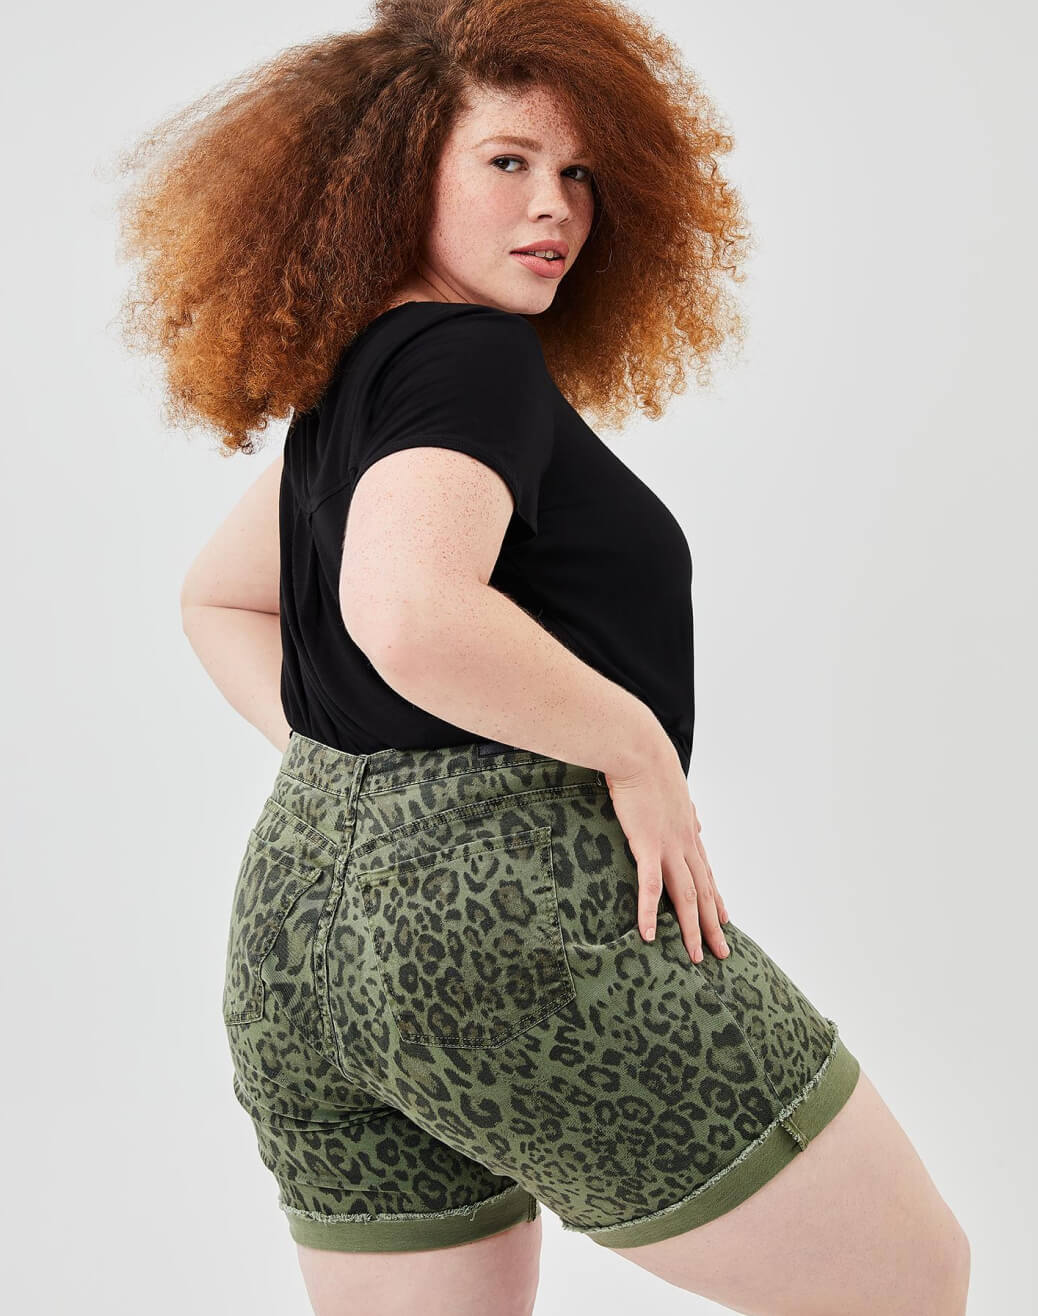 Woman in plus-size leopard print shorts and plus-size black top.